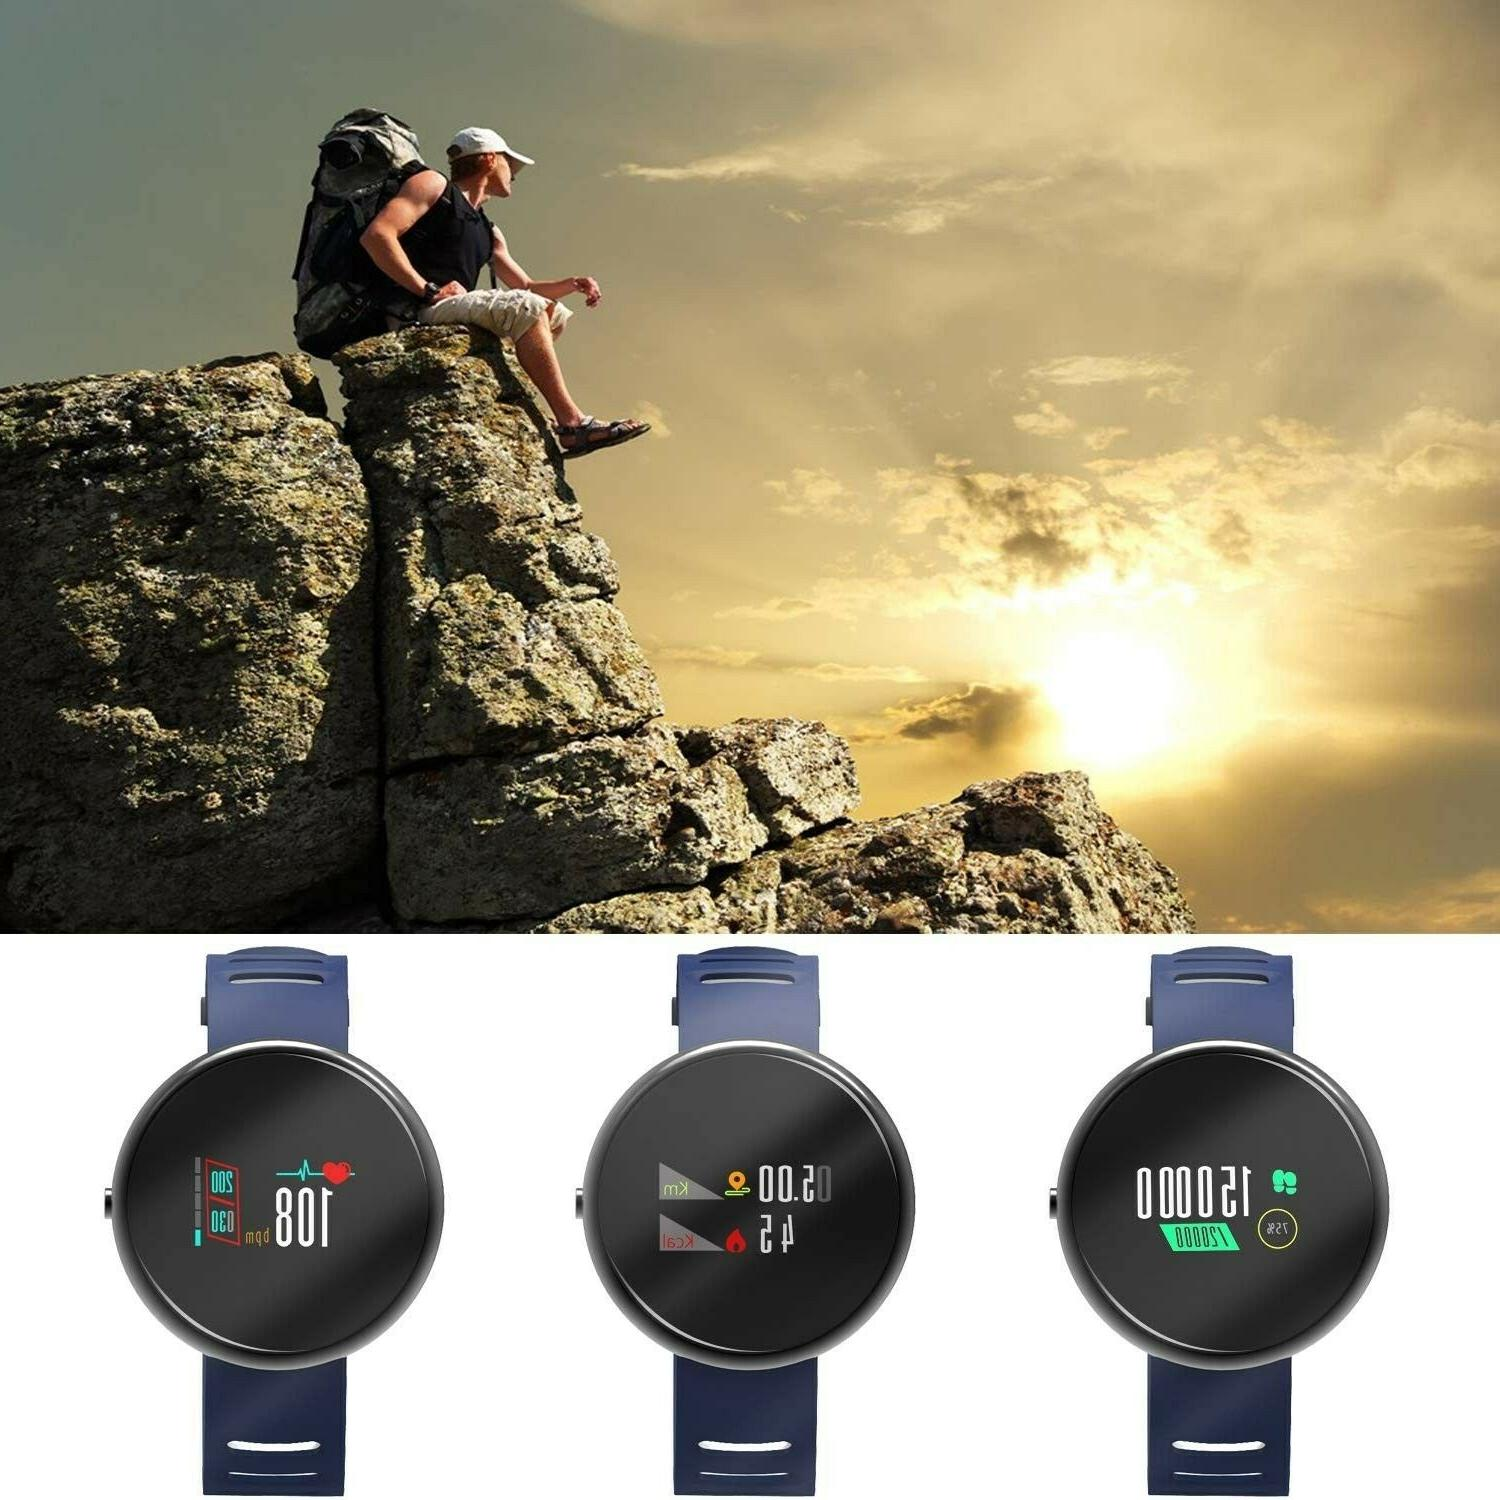 YoYoFit Fitness Activity Tracker, Rate Monitor Smart with